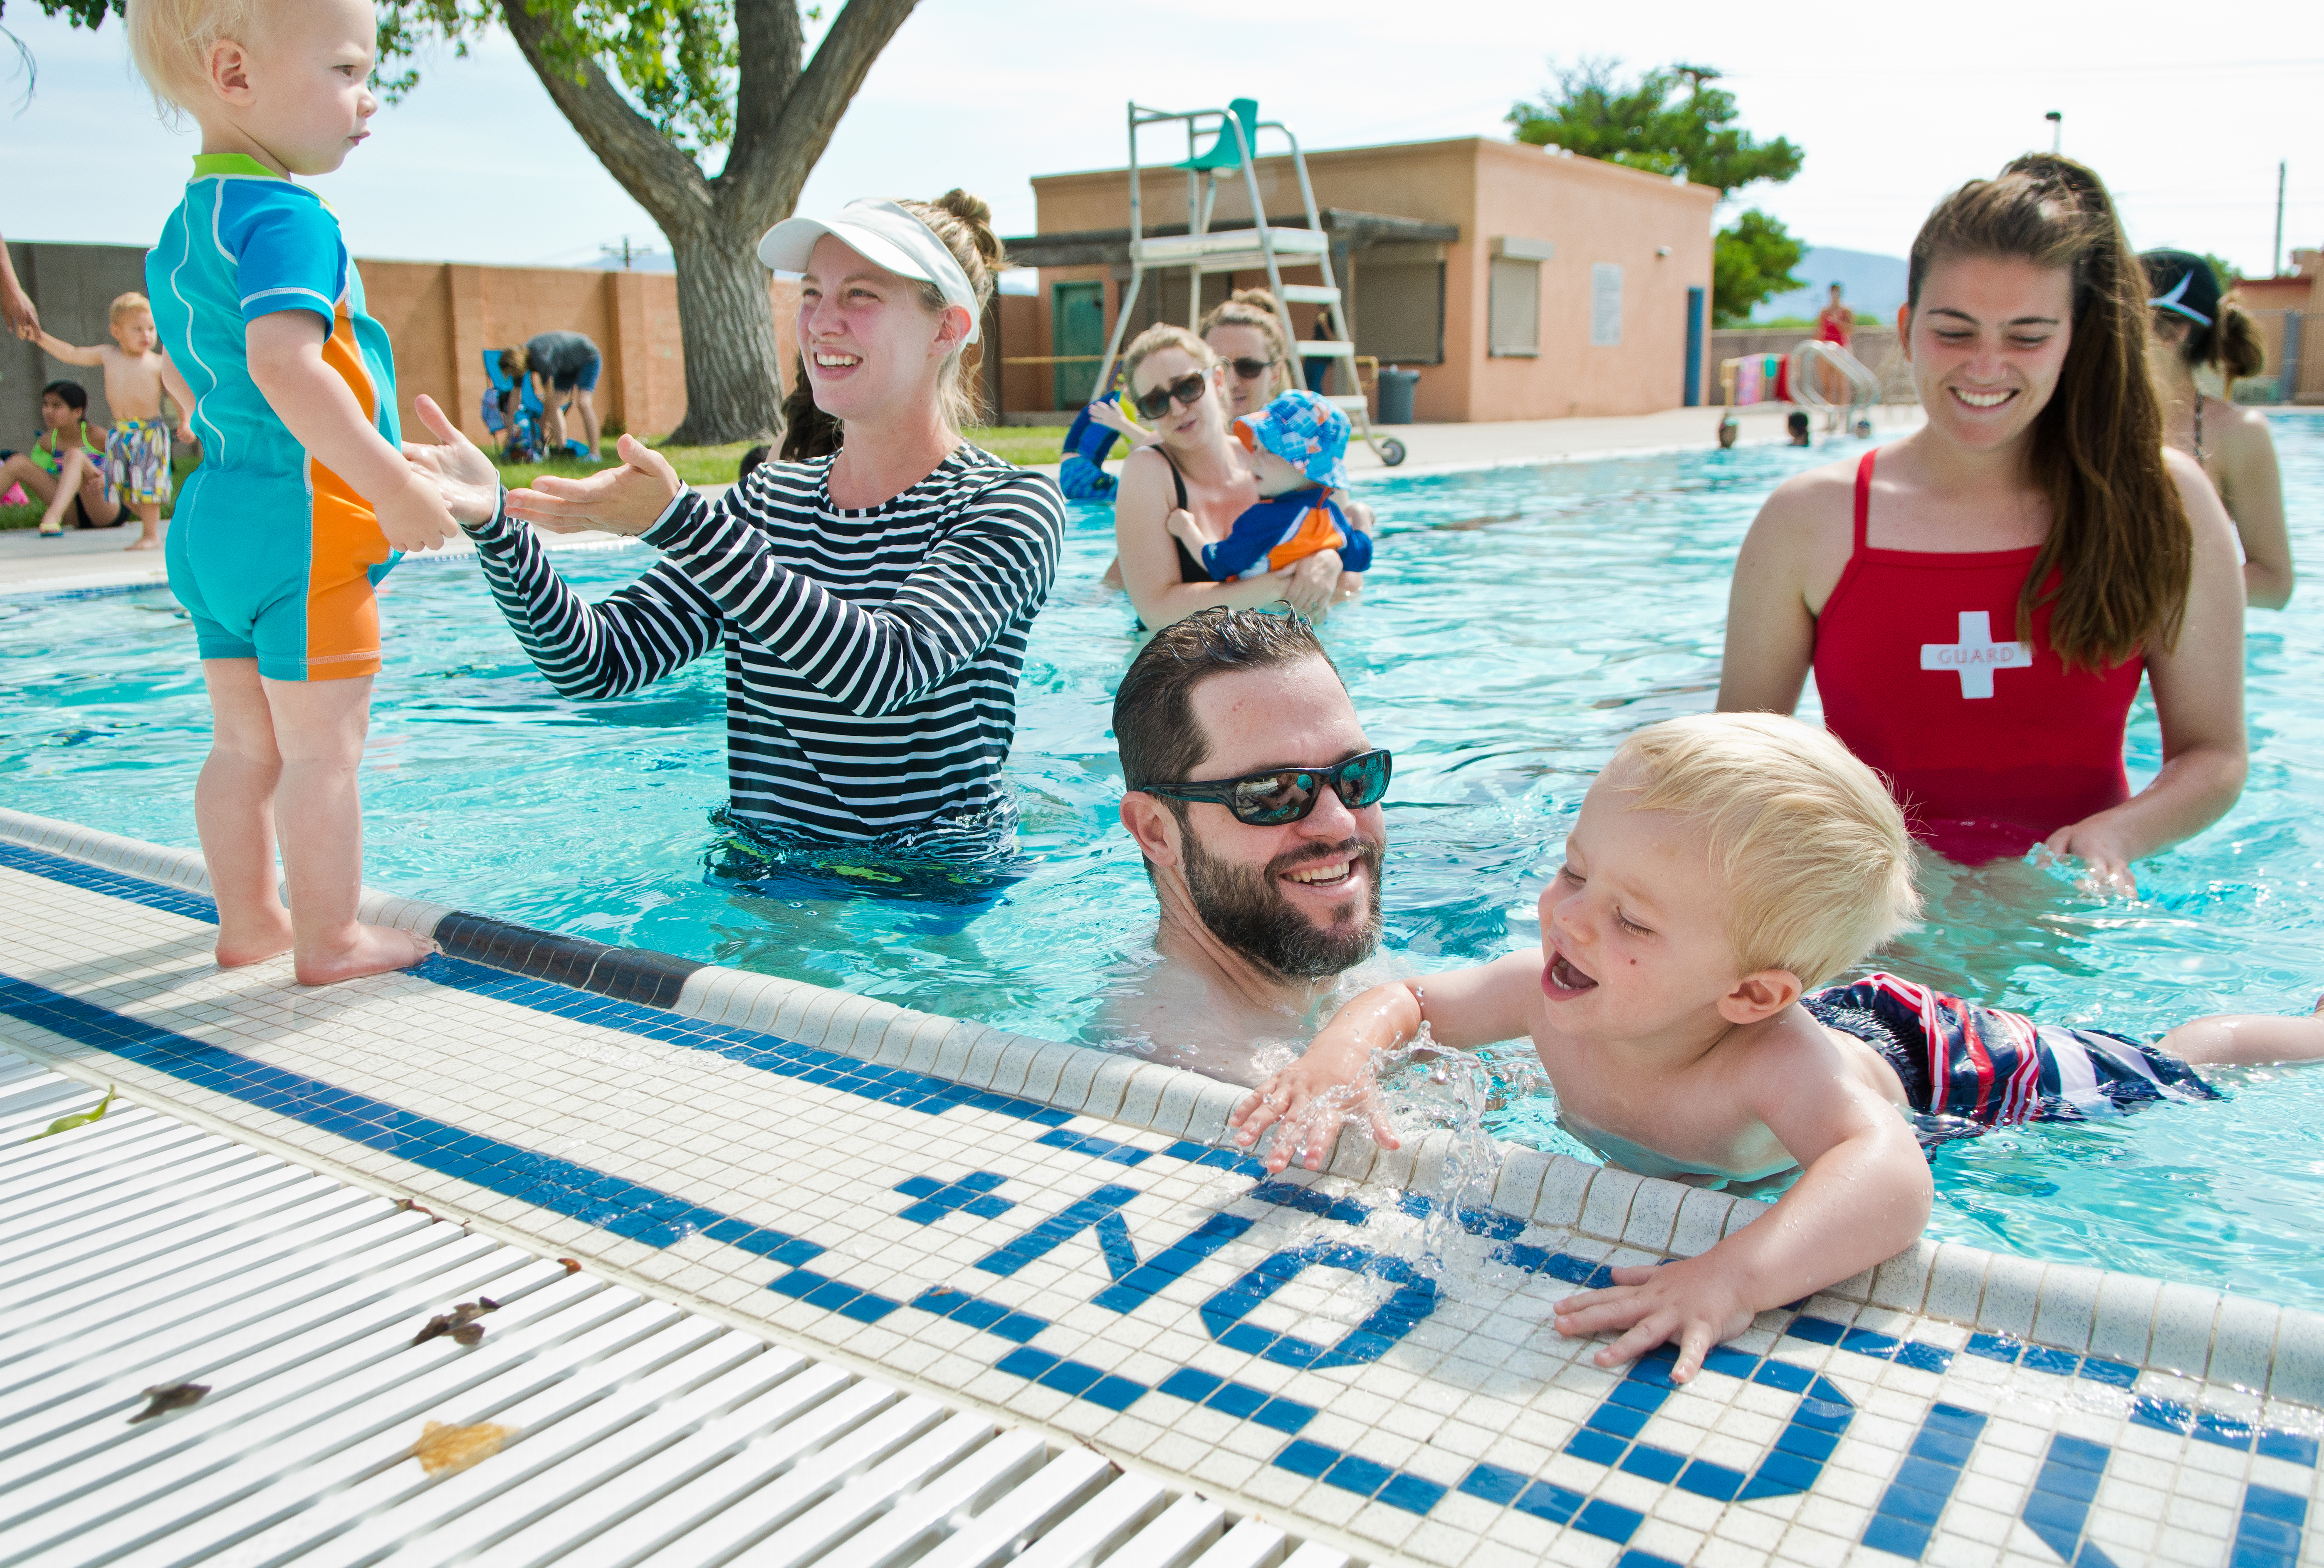 Keep kids safe when they are in or around water » Albuquerque Journal